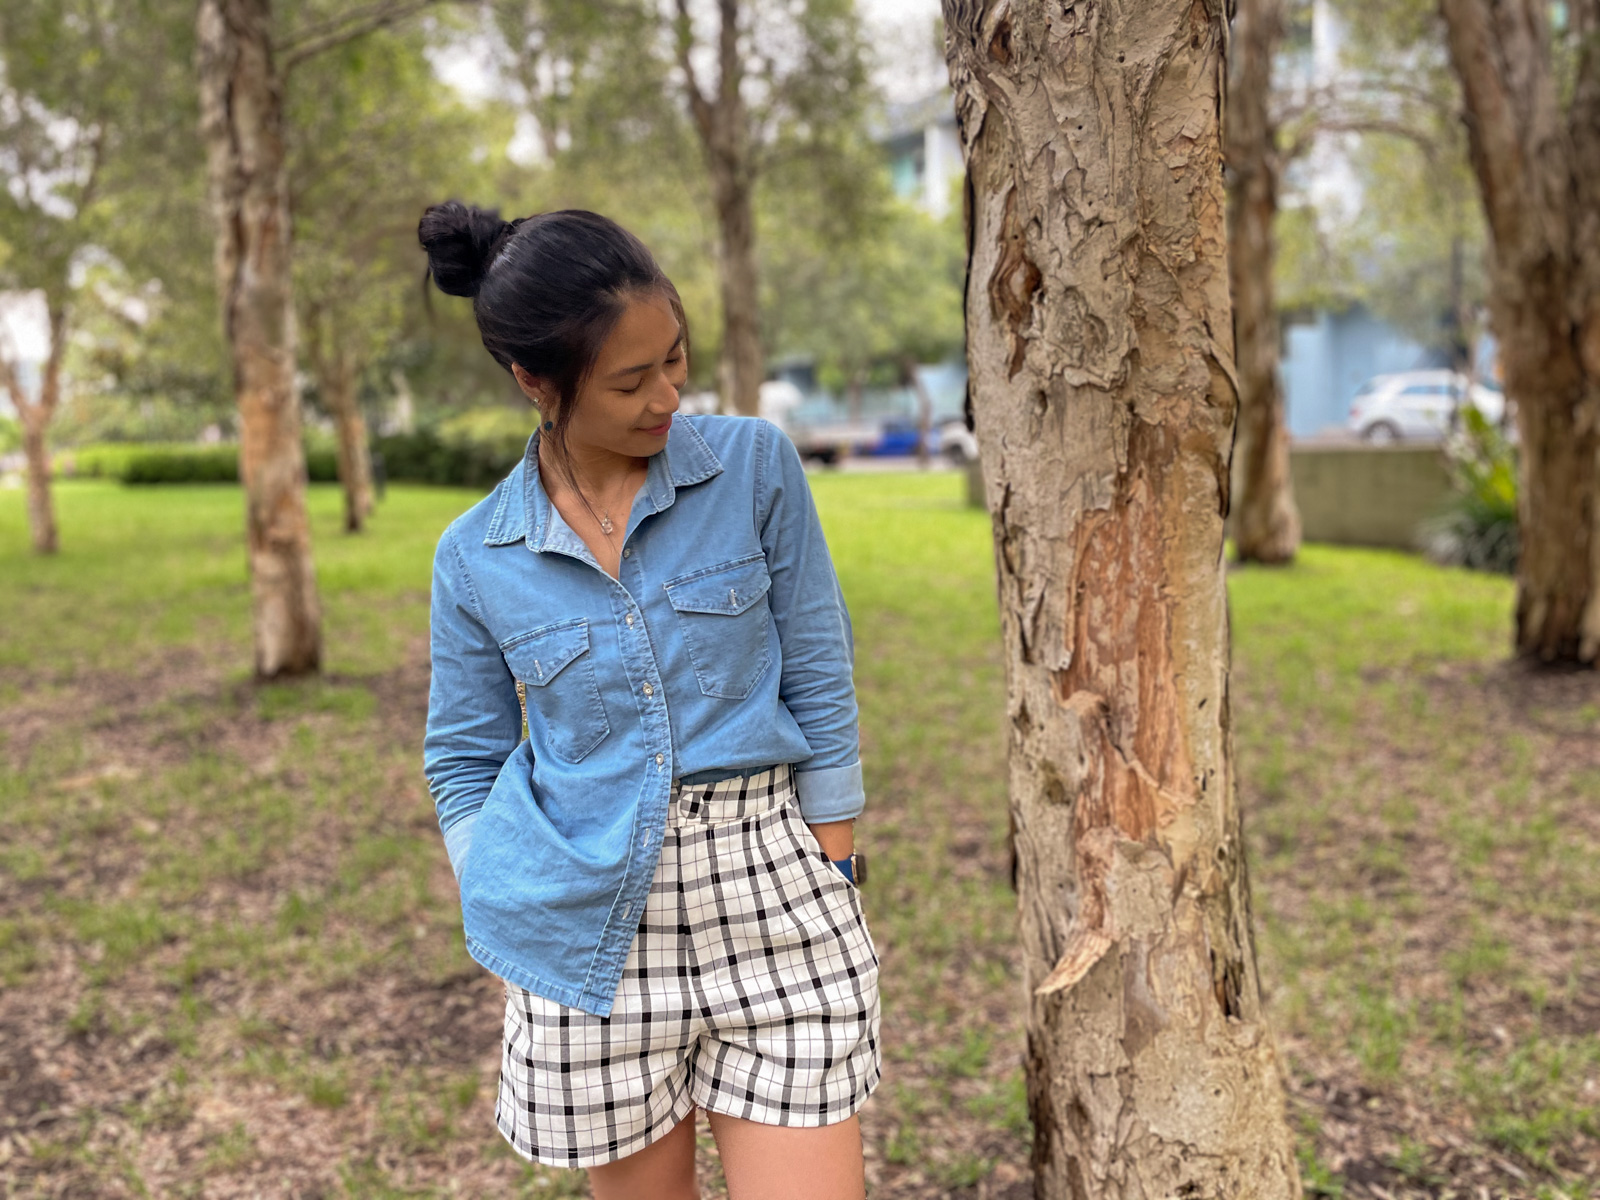 A woman wearing a chambray button-up shirt, half tucked into a pair of shorts with a black and white check pattern. She has her hands in her pockets. Her dark hair is up in a bun and she is looking down and to the side, not facing the camera. She is standing amongst a handful of trees spaced apart.